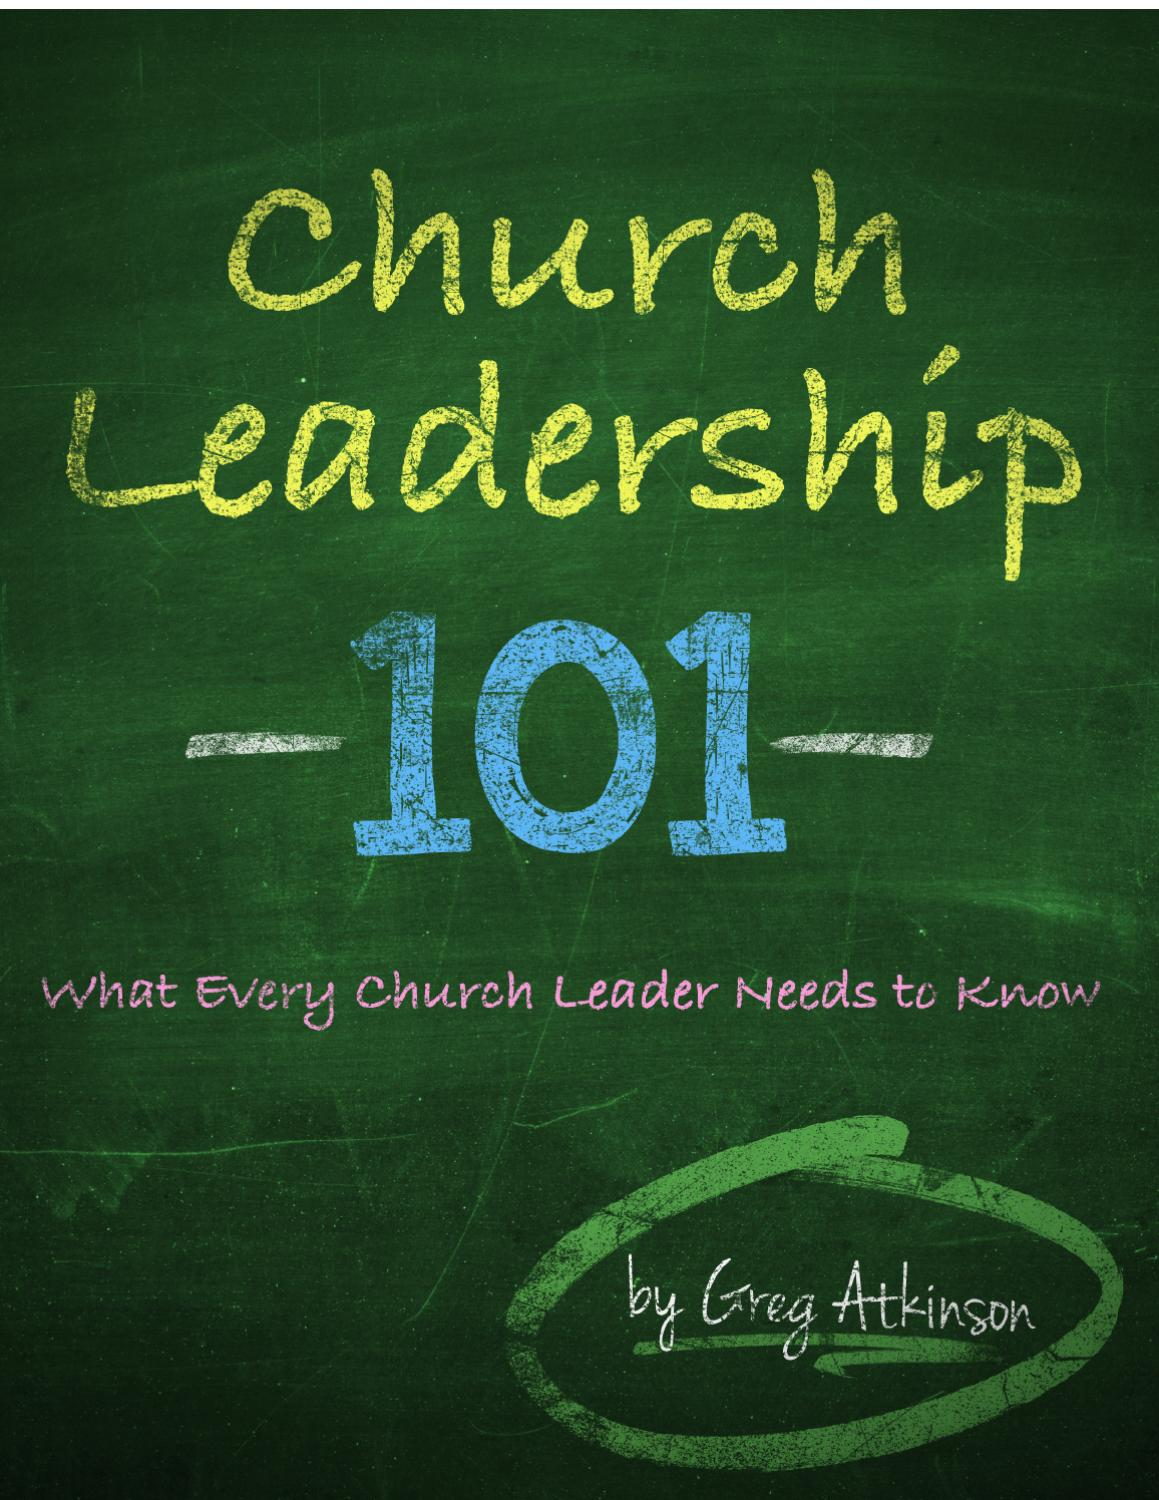 the leadership of the church